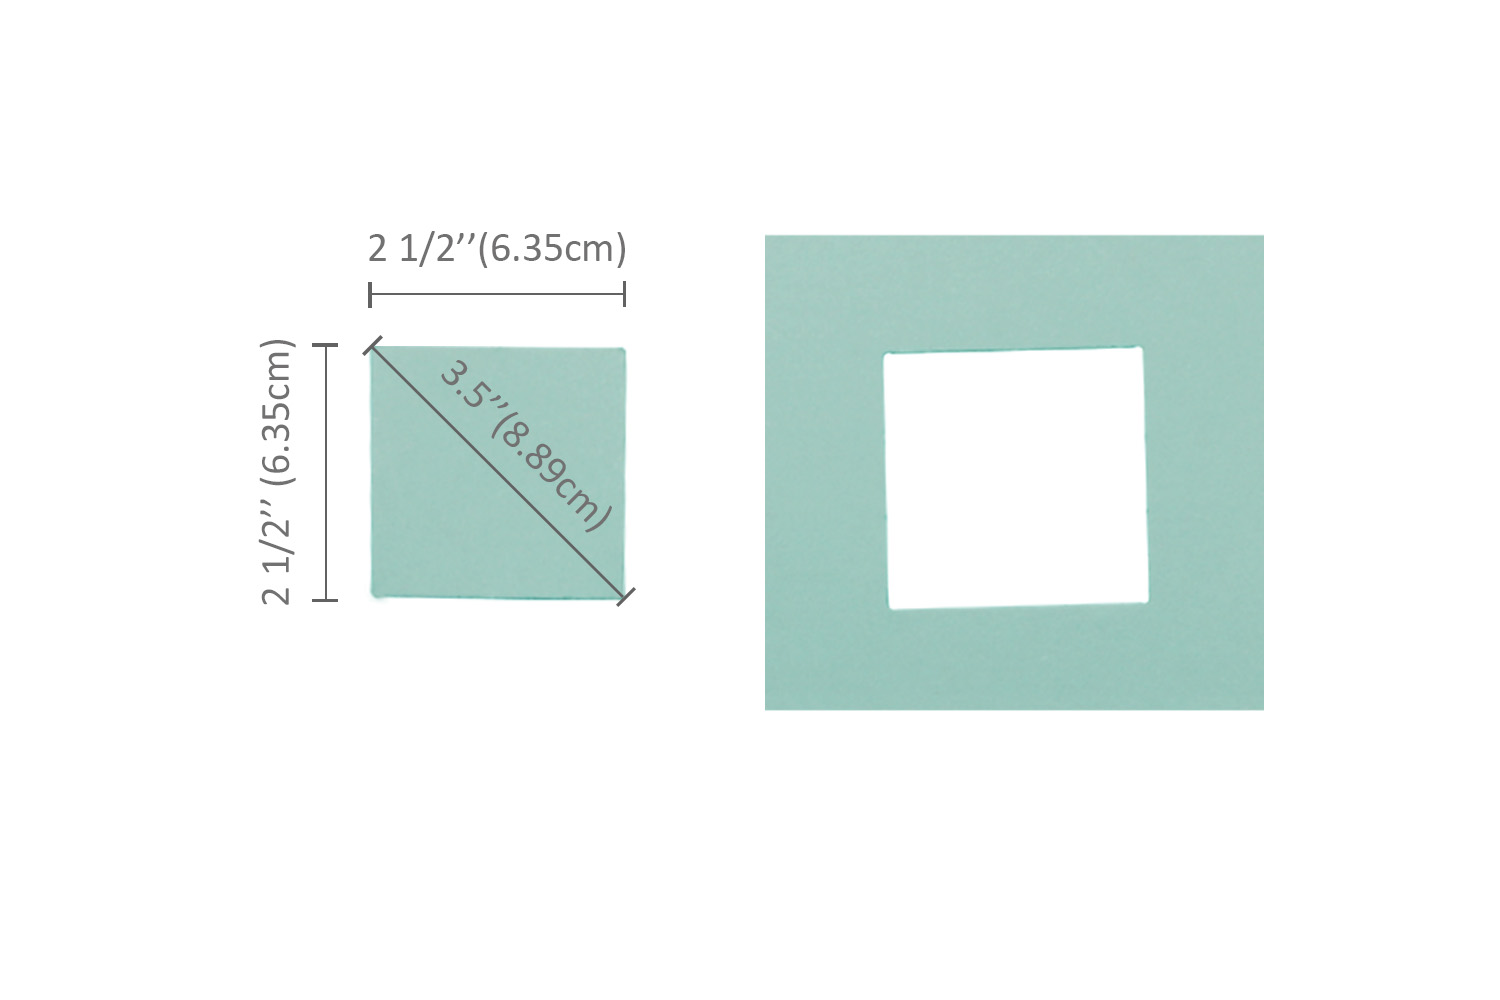 Bira 2.5 X 2.5 inch Square Lever Action Extra Large Craft Punch for Paper Crafting Scrapbooking 3.5 inch Square measured diagonally